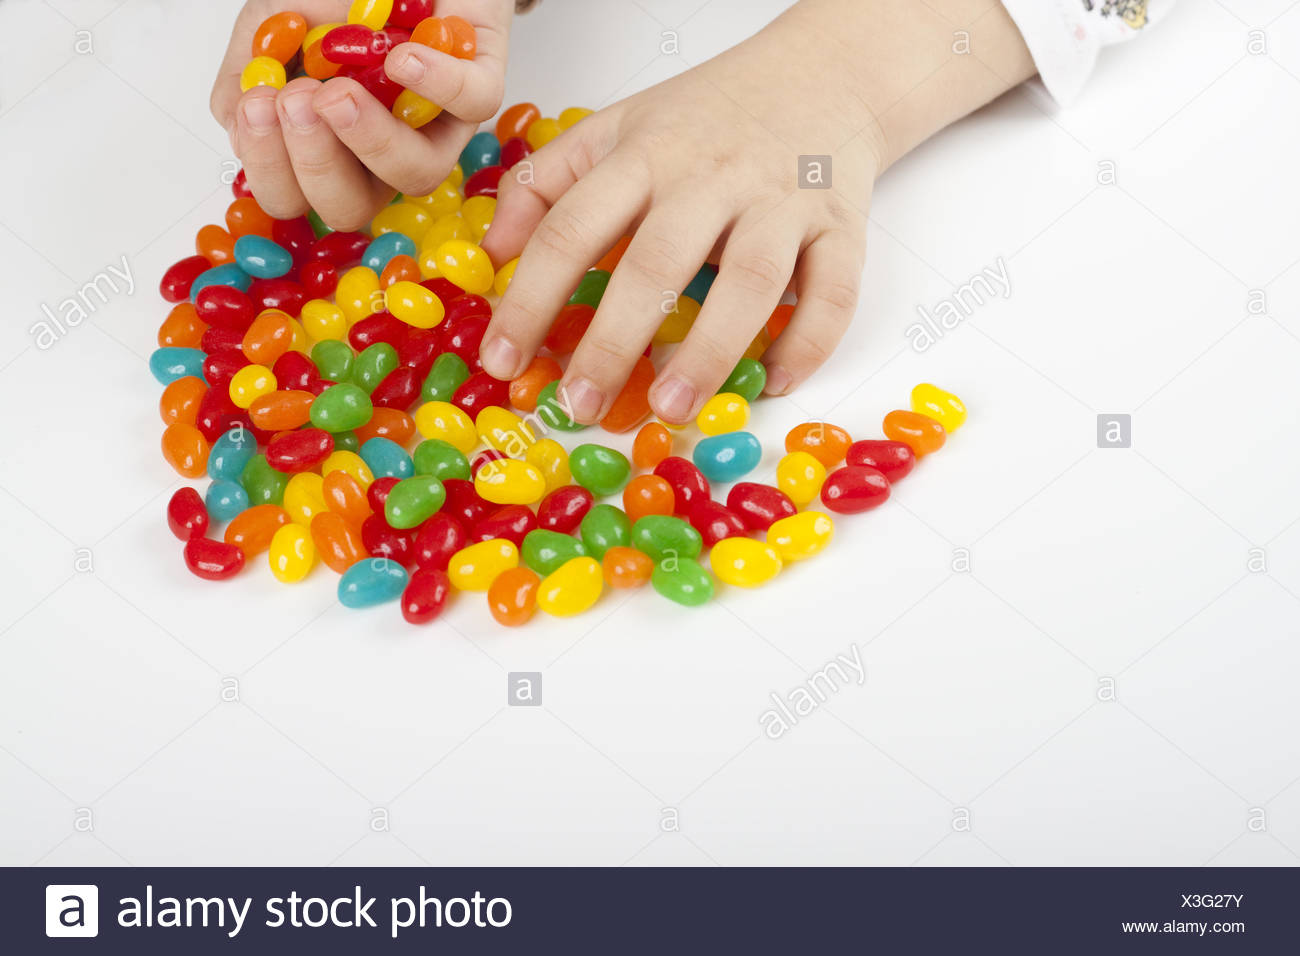 grabing candy Stock Photo